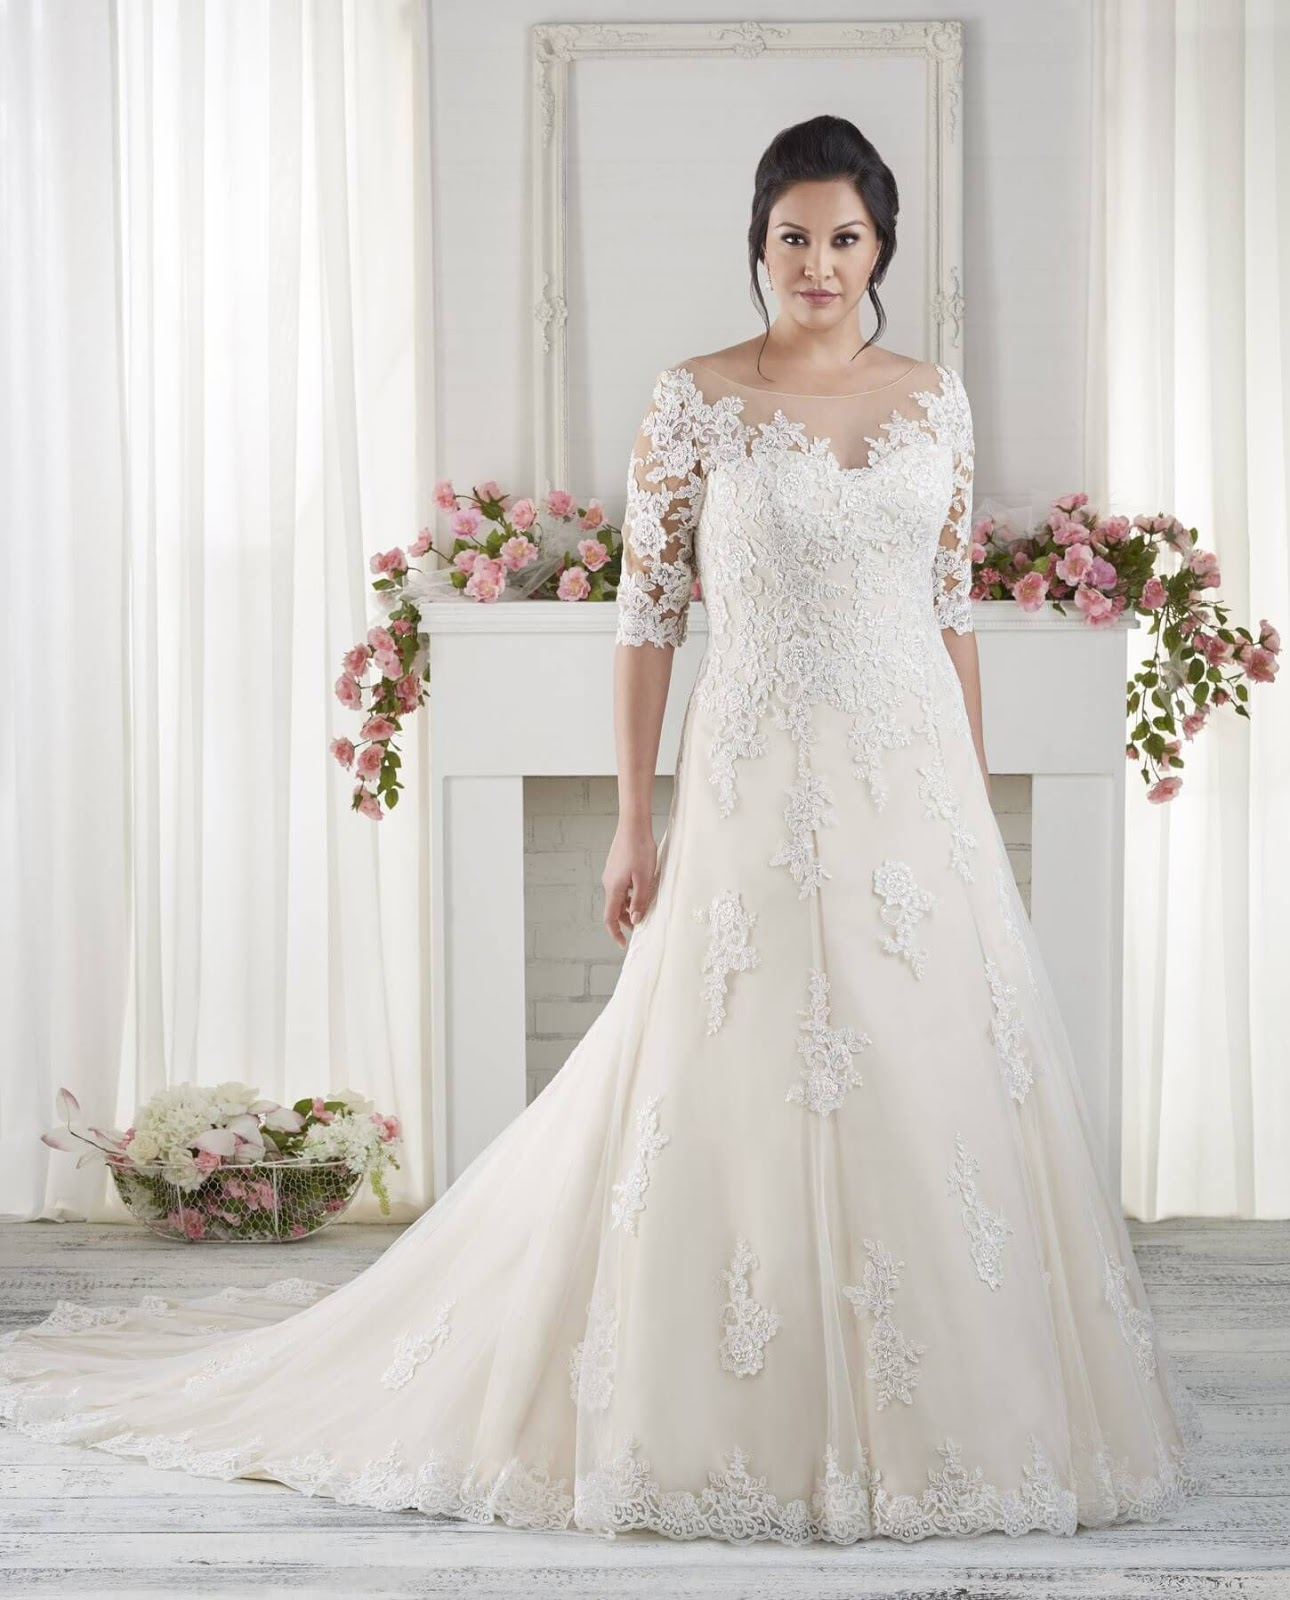 d01ee4ef2932 The Best Wedding Dresses for Fat Arms! | Wedding Dresses - Wedding Gown  Designs For